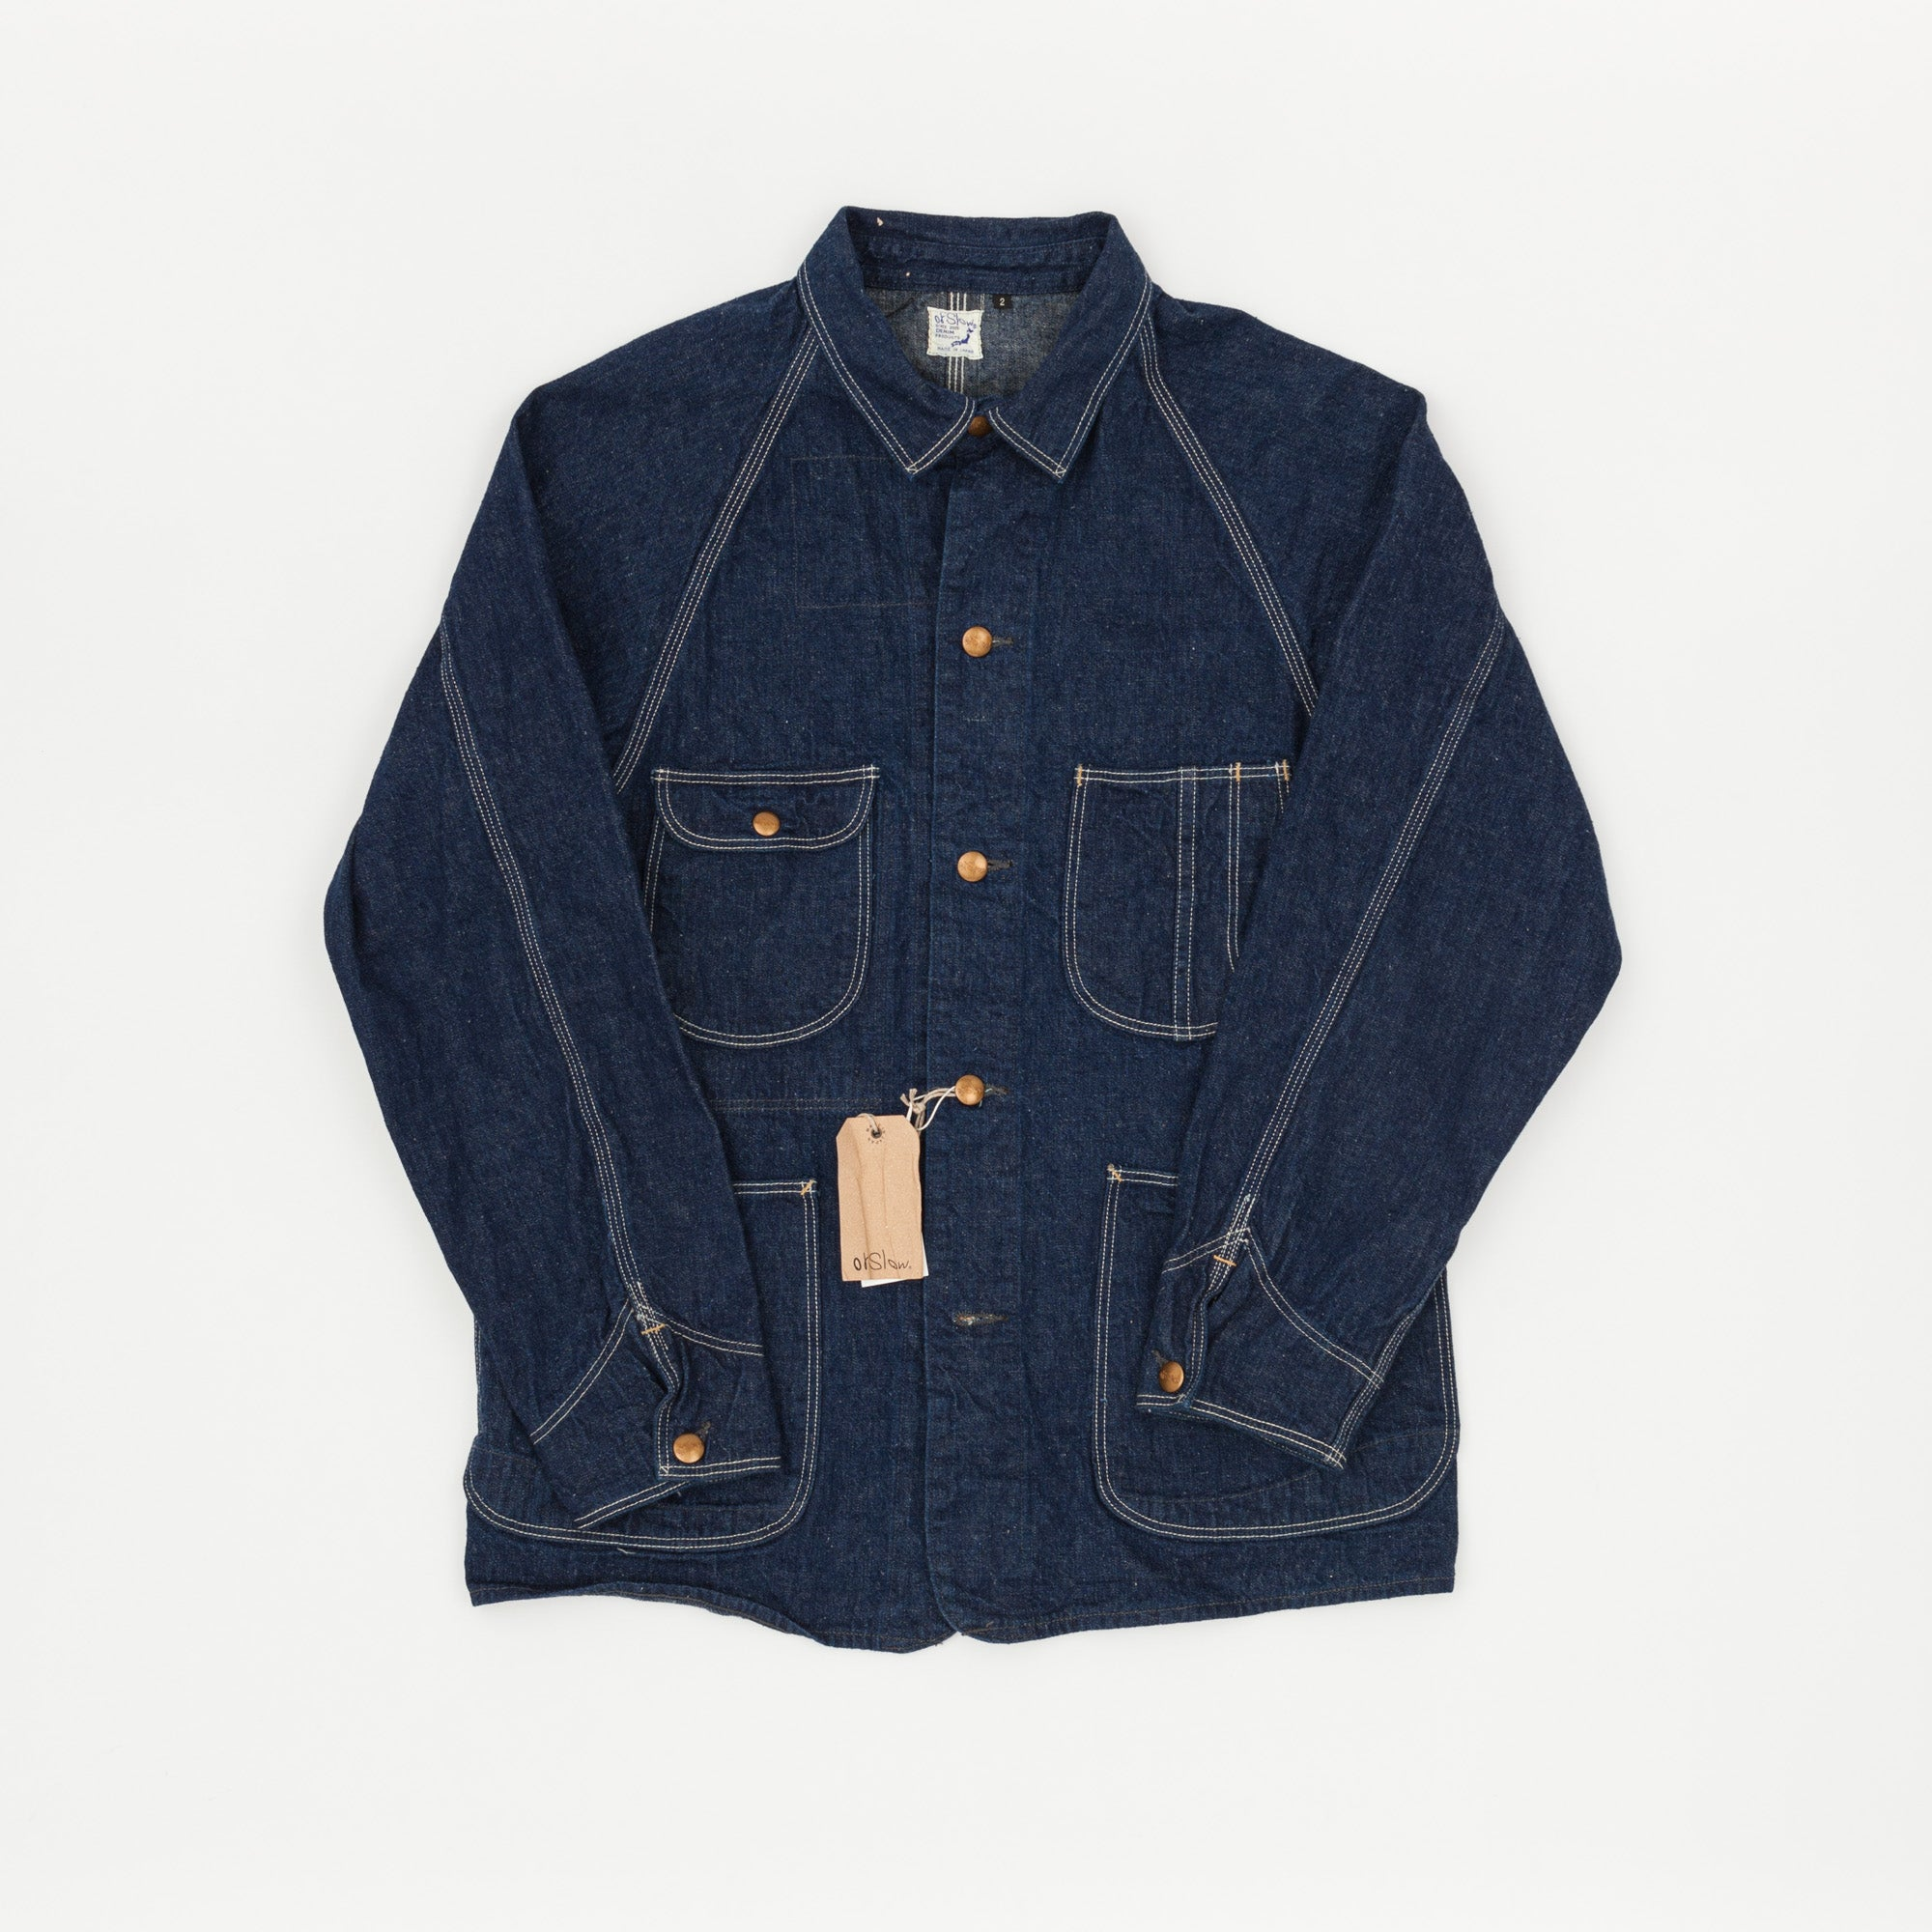 Orslow 1950s Coverall Denim Jacket